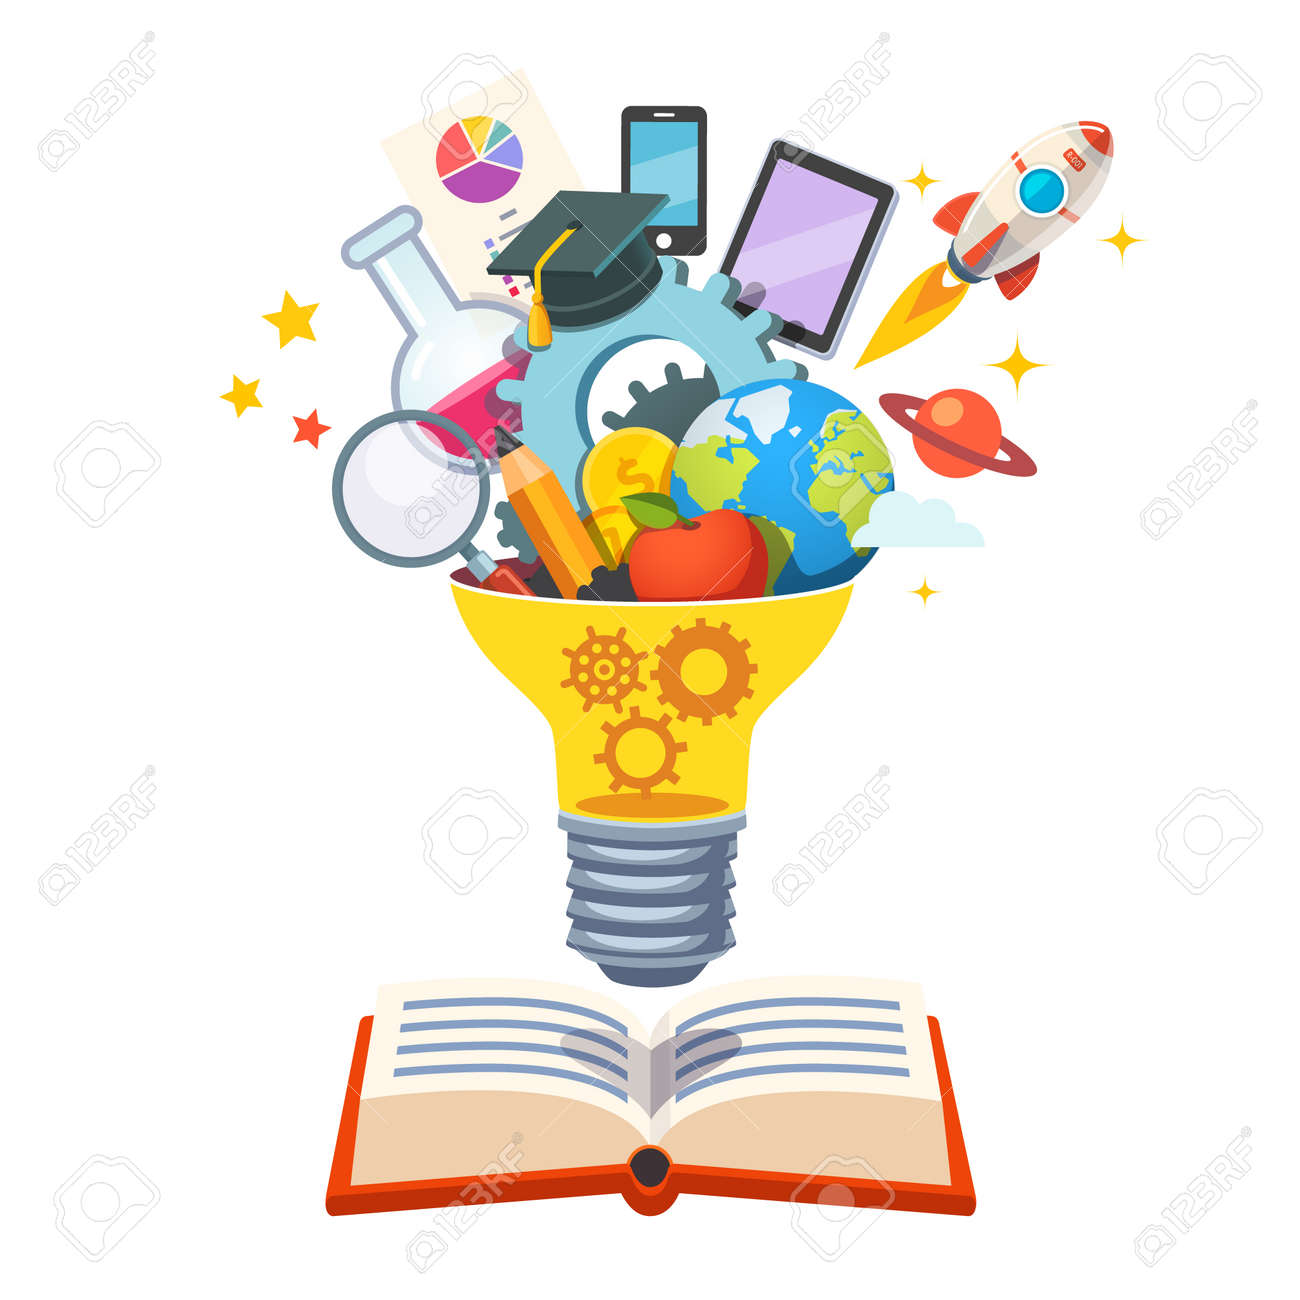 Light bulb with gears inside floating over big book bursting with new ideas. Education concept. Flat style vector illustration isolated on white background. - 52901822